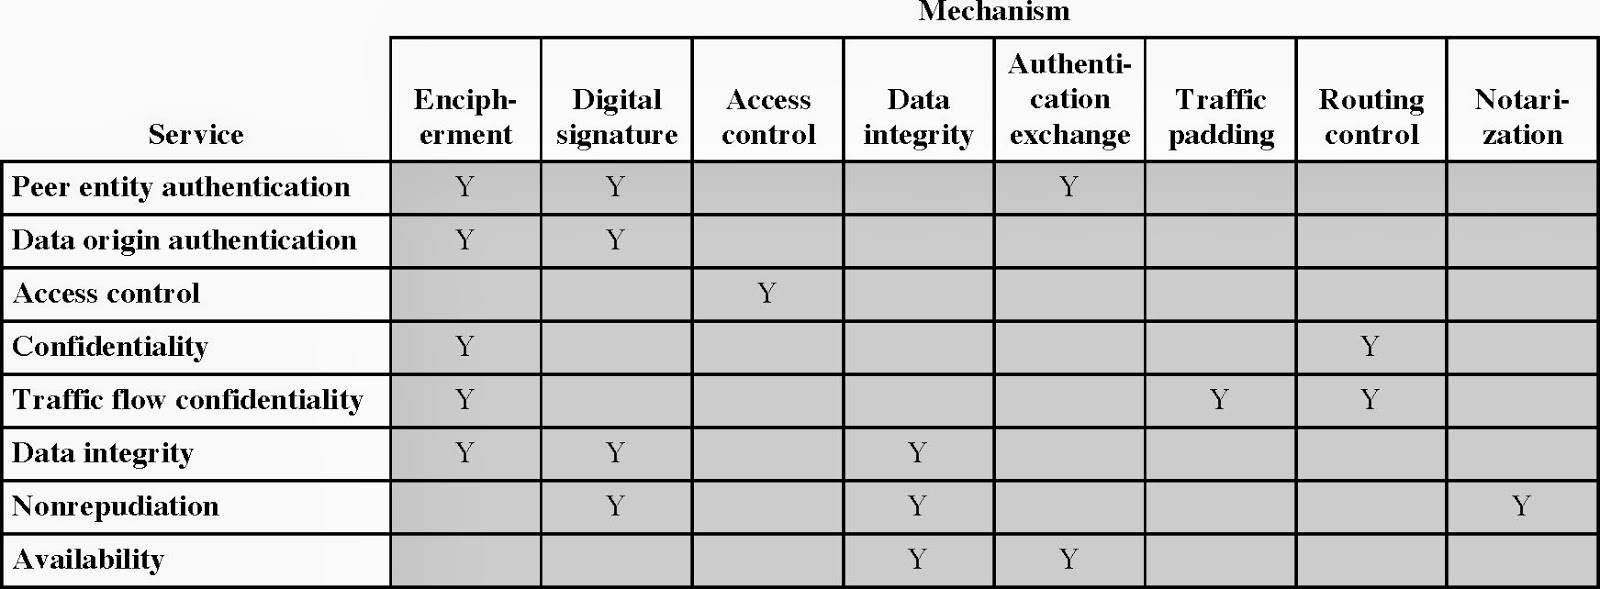 Security Mechansim And Services The Osi Data Relation Of Mechanism